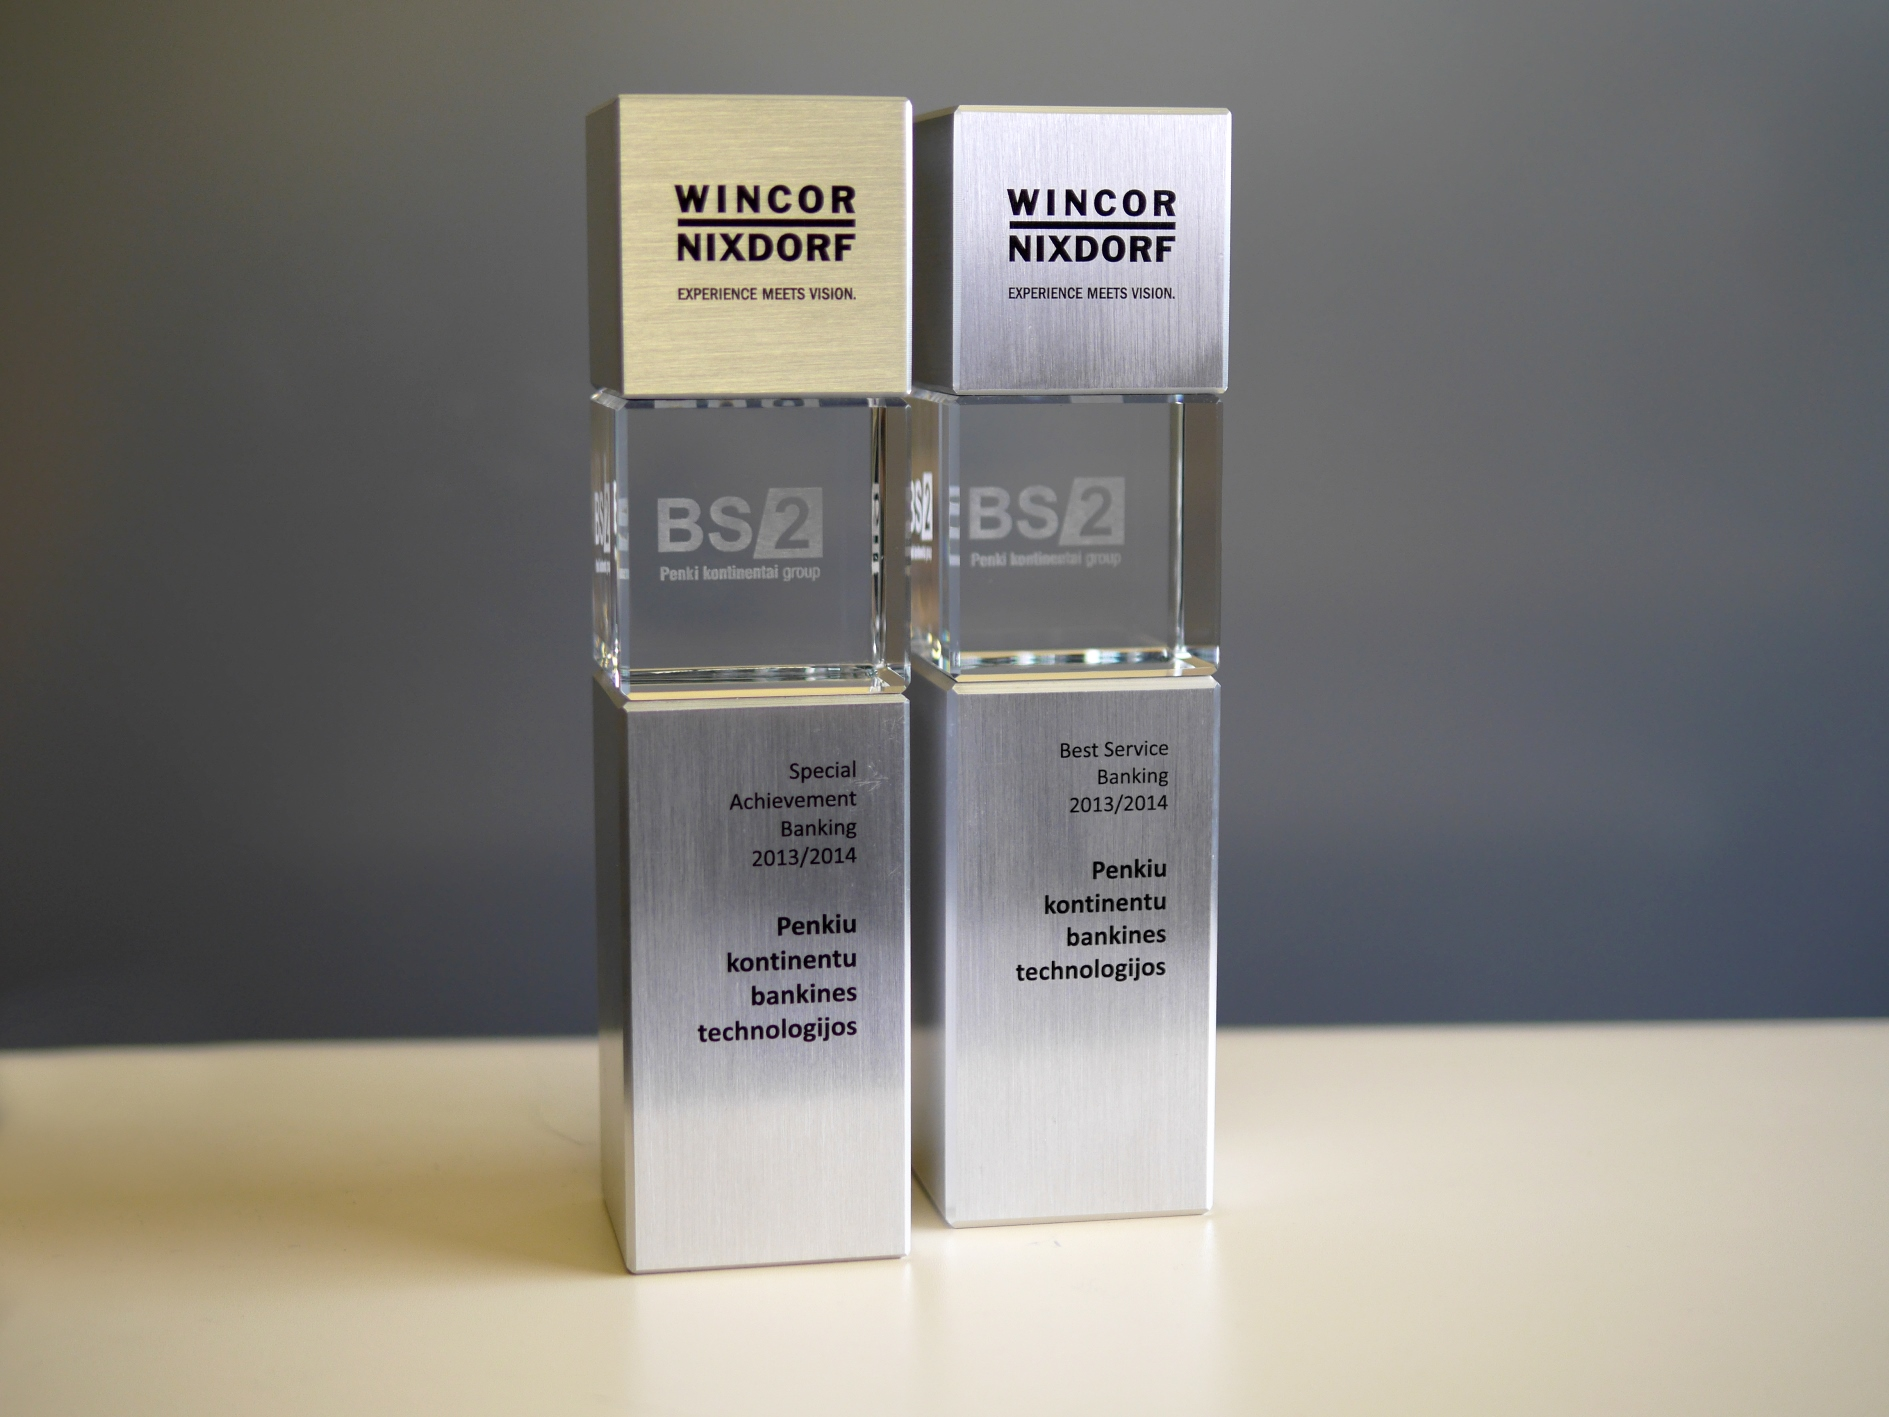 BS/2 Awarded for Its Successful Performance at Wincor Nixdorf Partner Summit